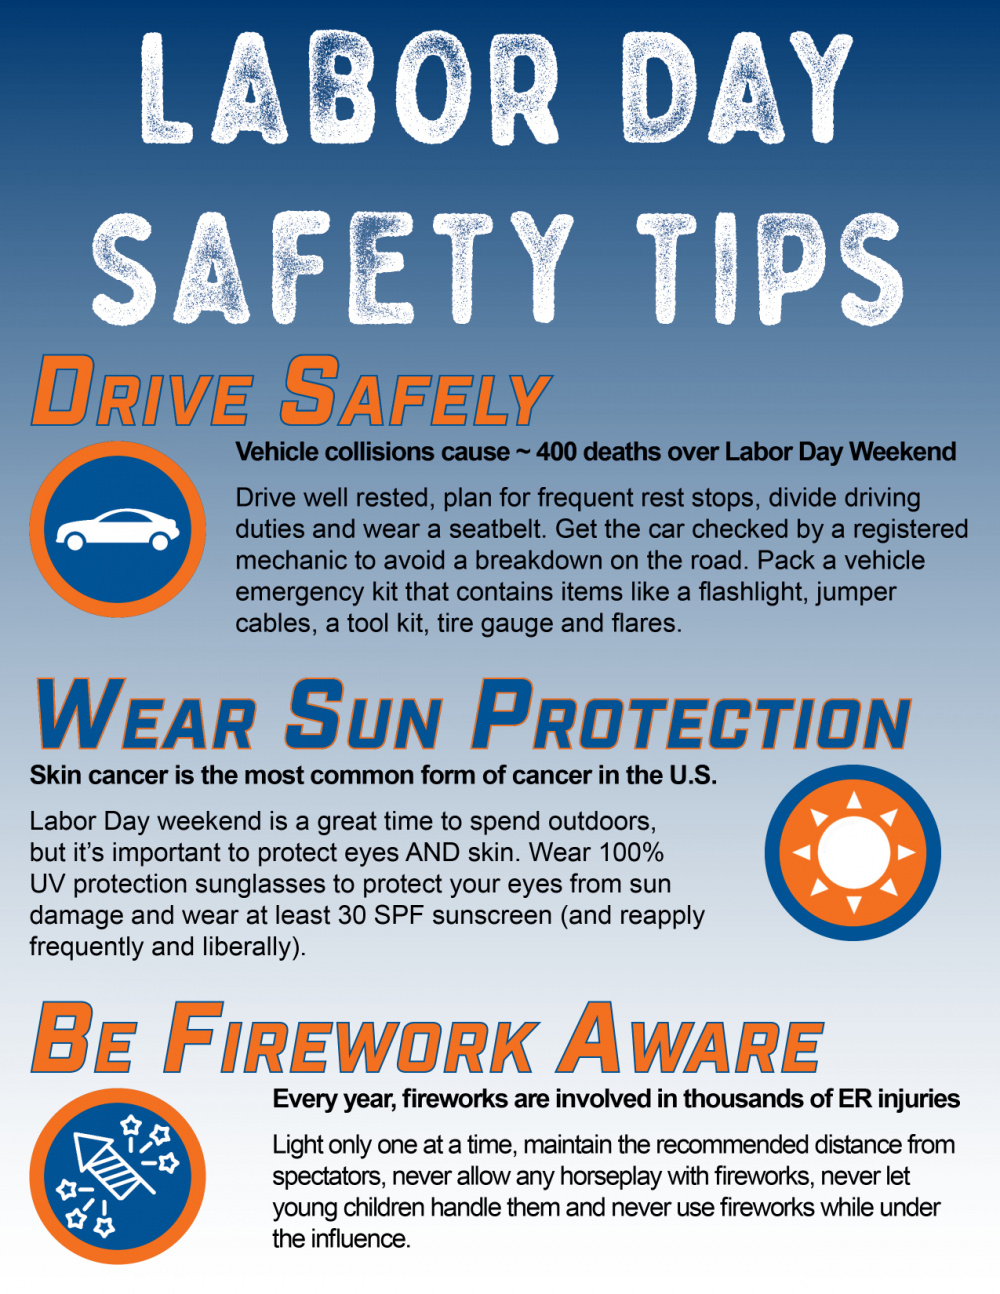 Labor Day Safety Tips